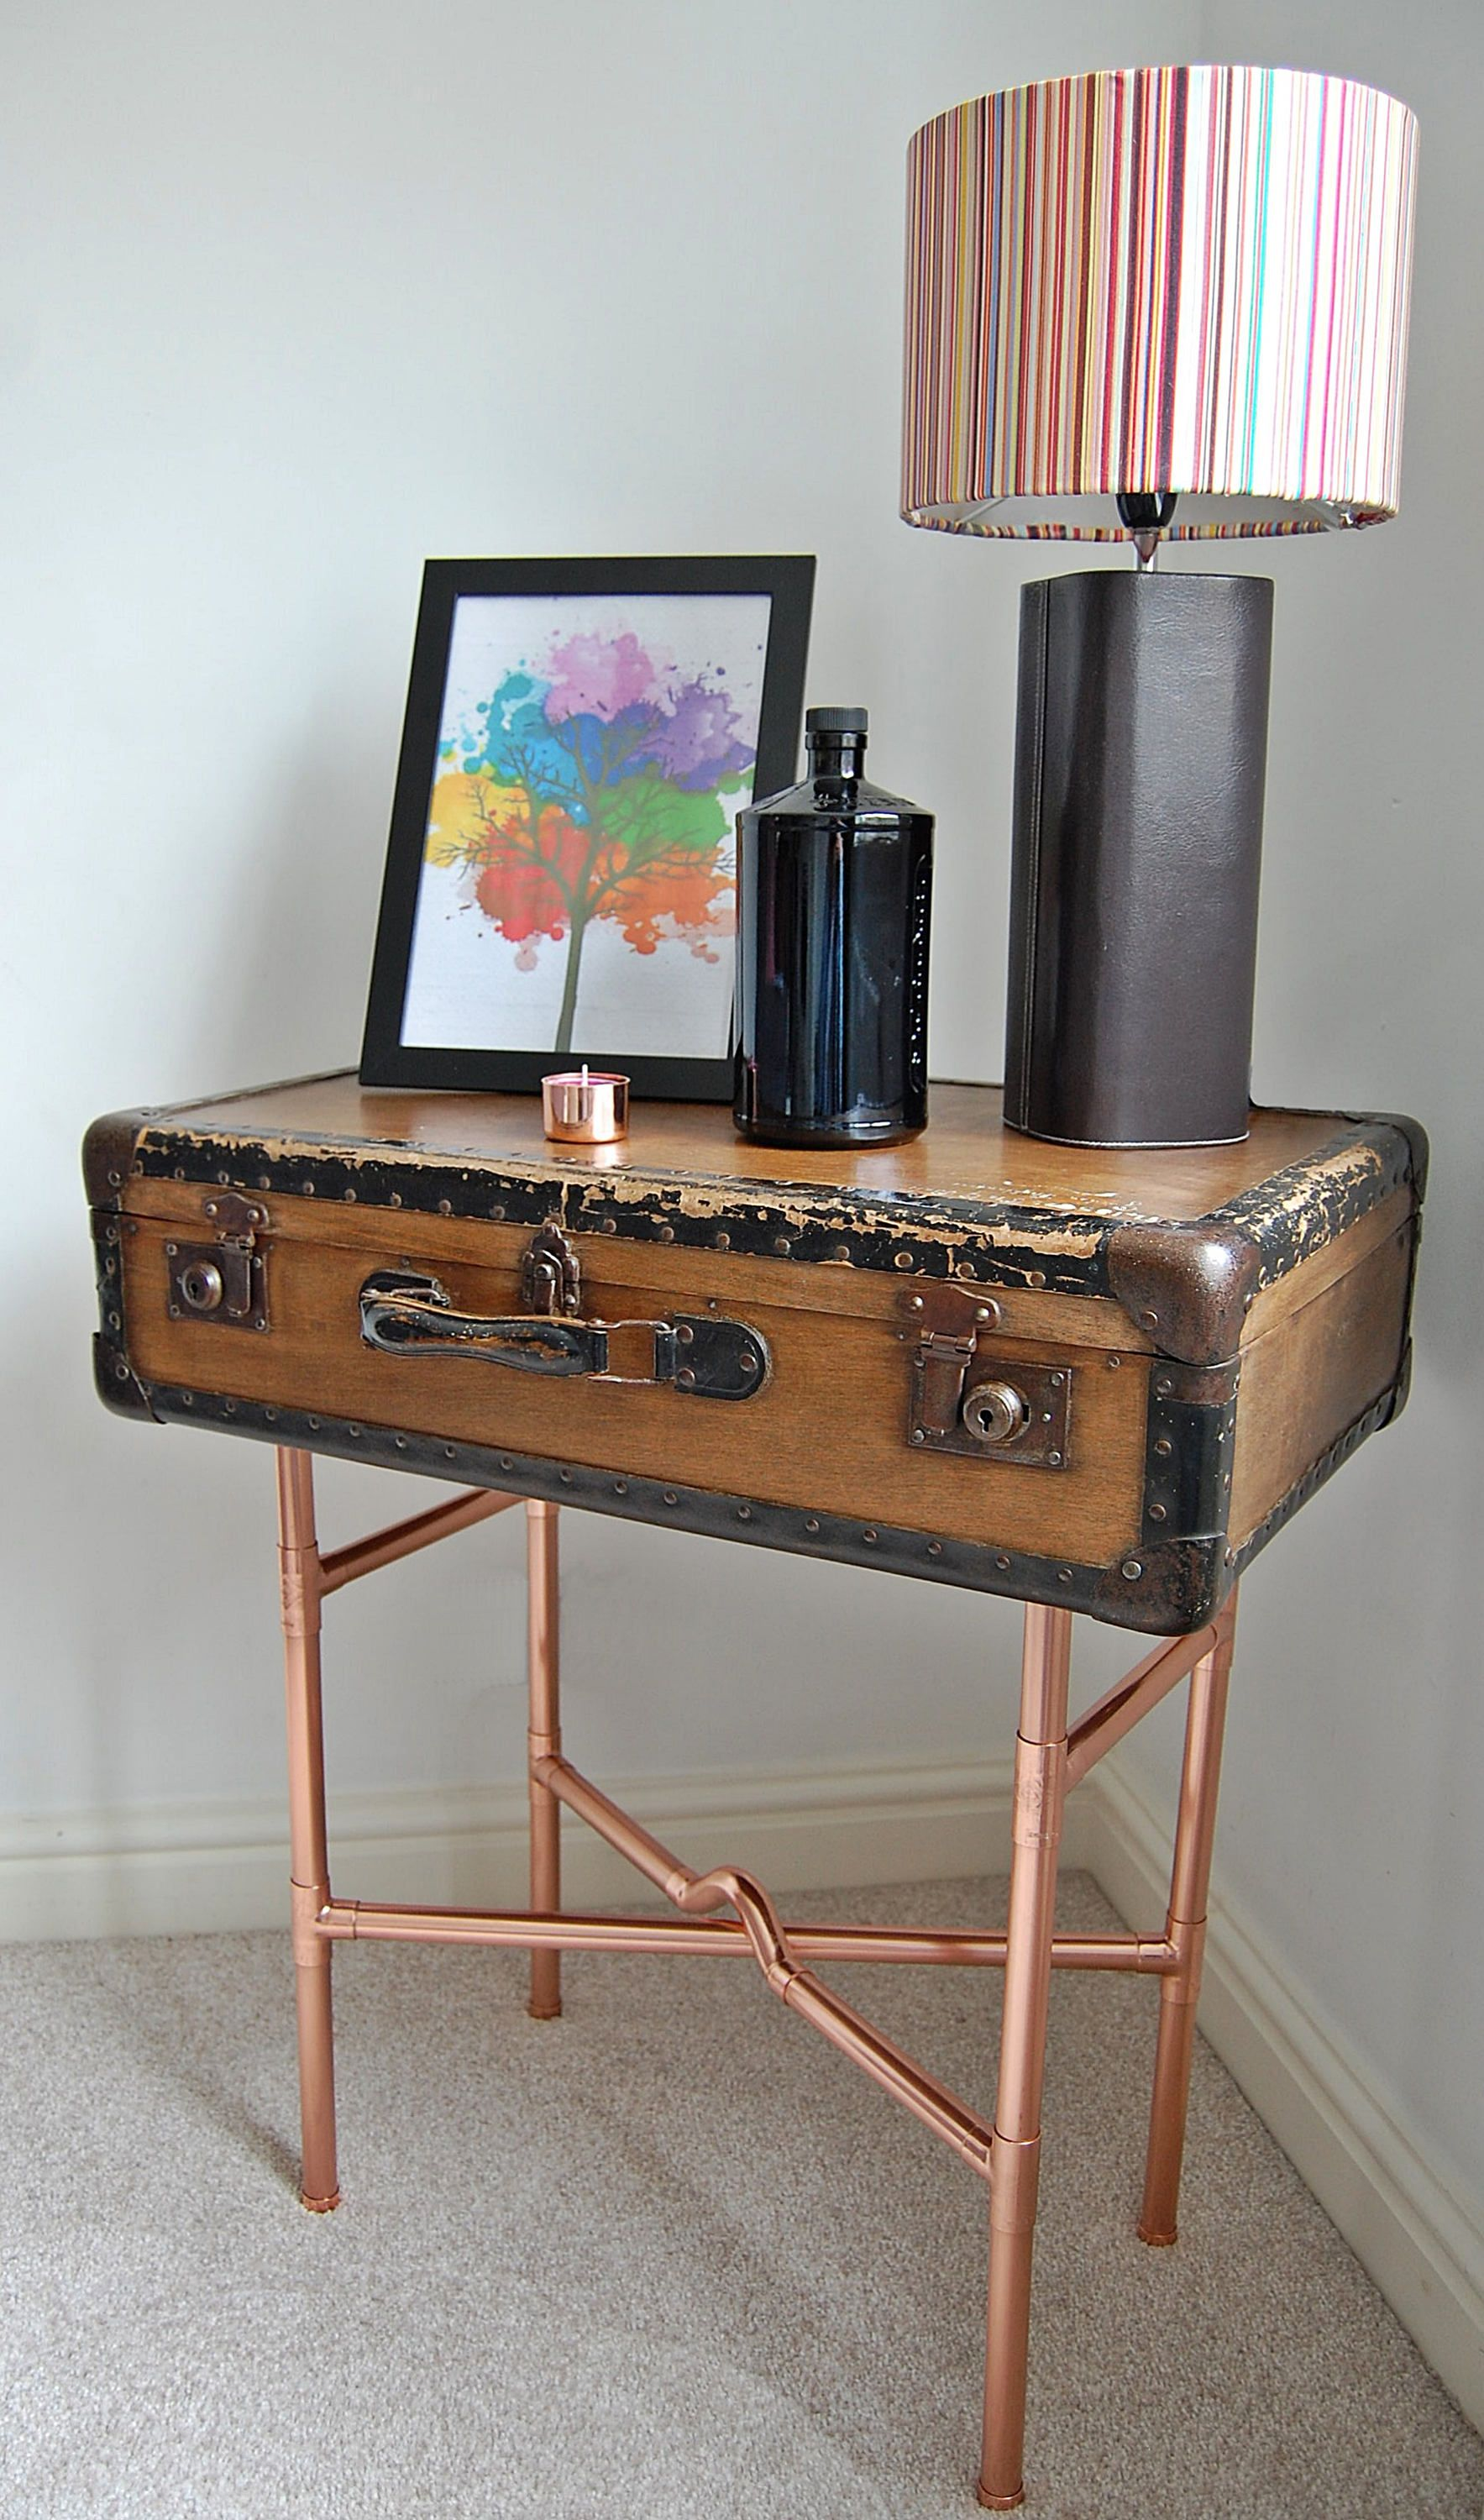 Vintage Suitcase Table Vintage Table End Table Vintage Style Vintage Decor  Copper Unique Table Upcycled Vintage